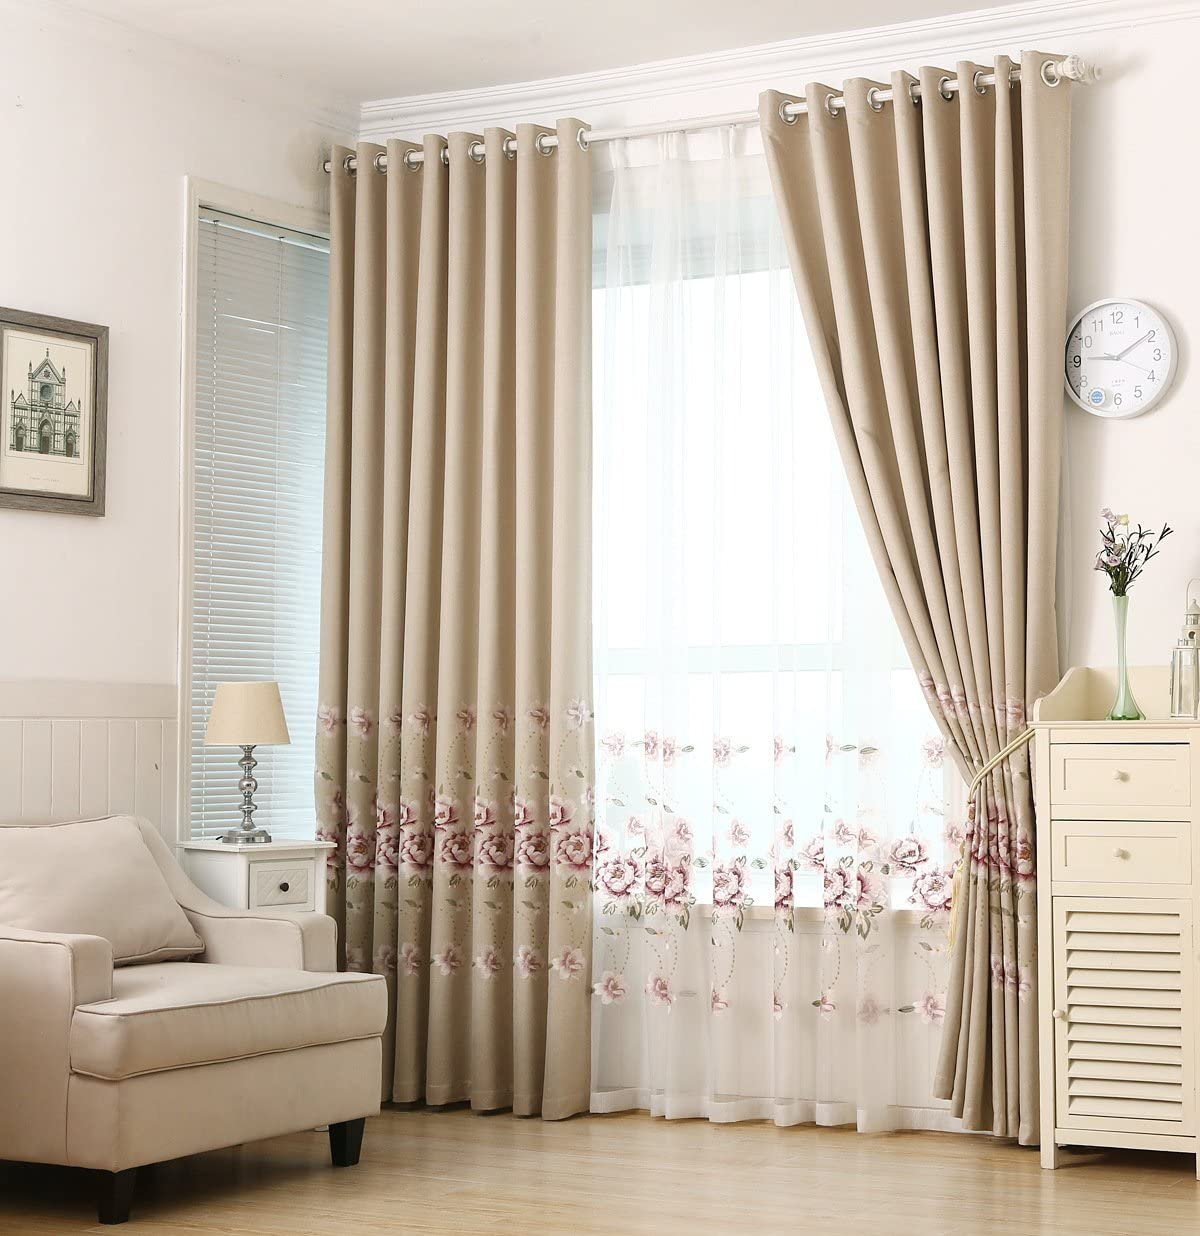 pureaqu Elegant Embroidered Floral Blackout Curtains Room Darkening Grommet Top Window Decoration Curtains for Living Room for Bedroom Beige 1 Panel W75 x H96 Inch